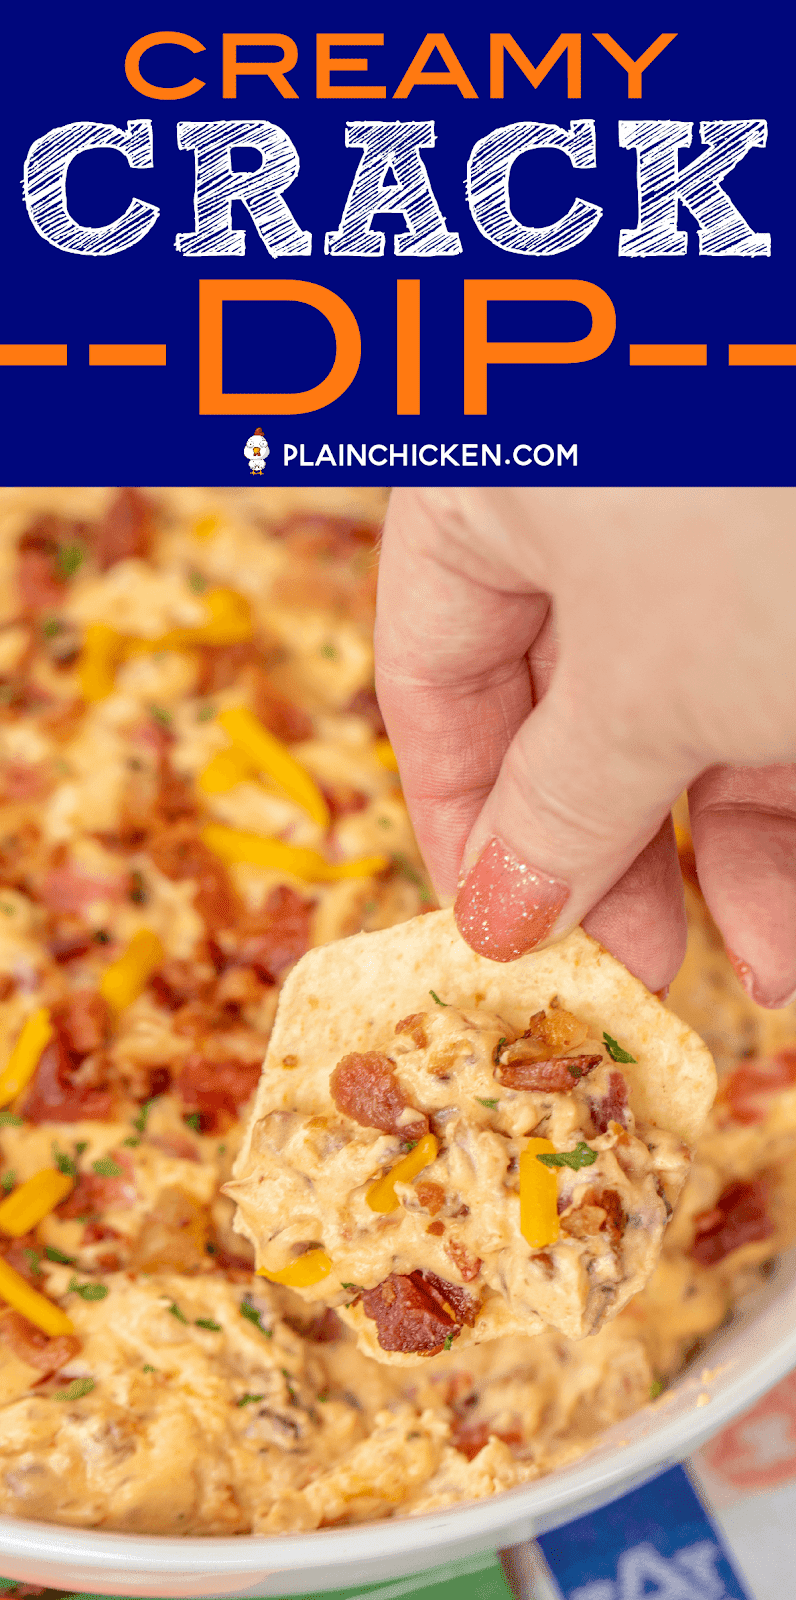 plain chicken crack dip recipe